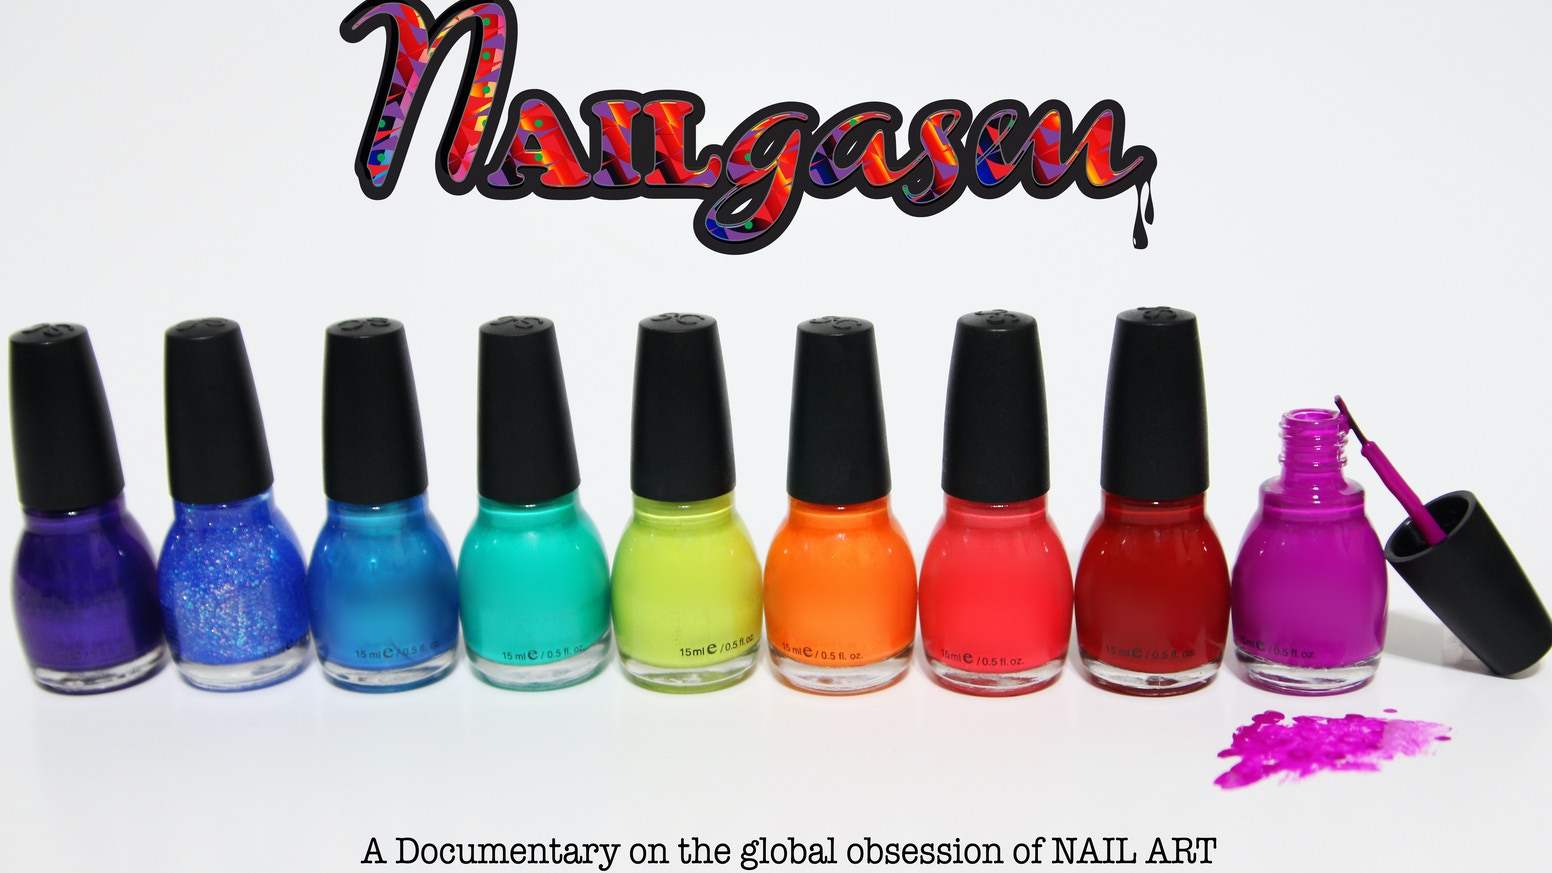 Nailgasm A Documentary On The Global Obsession Of Nail Art By Brass